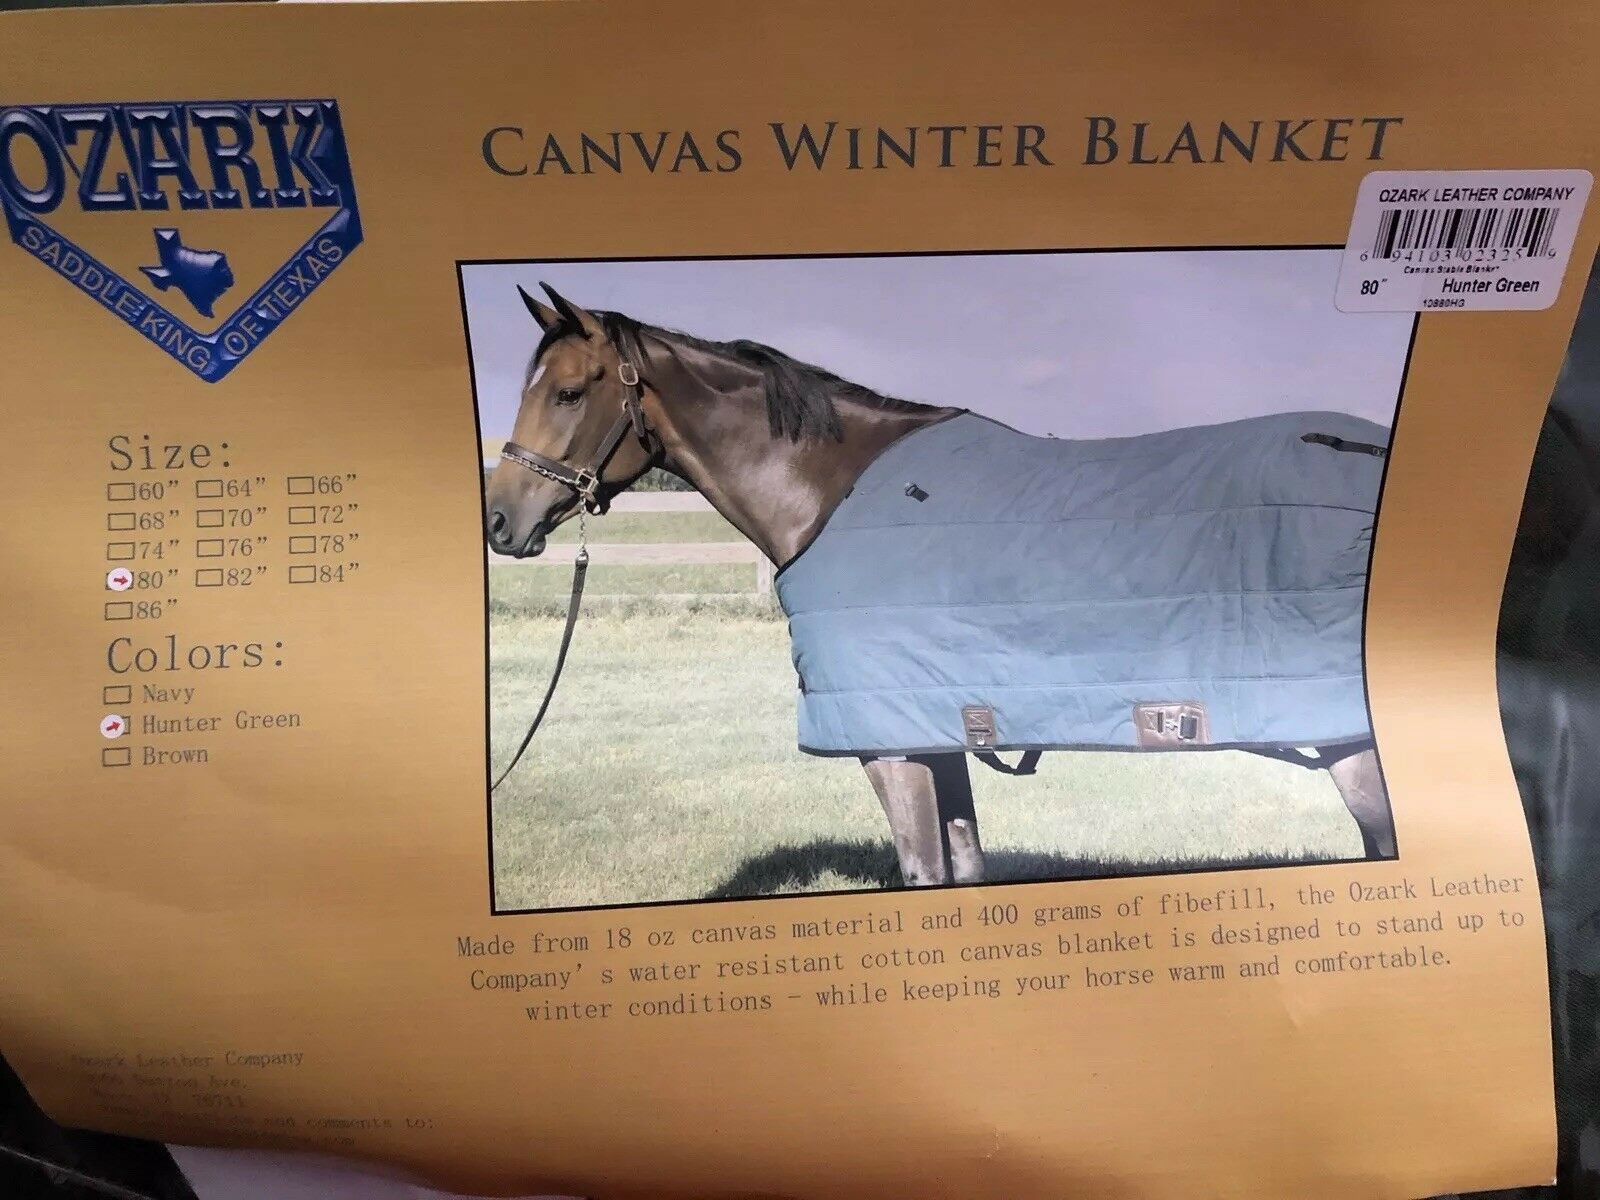 "New Ozark  Learher Canvas Winter Horse Blanket Size 80"" Hunter Green  fast shipping worldwide"